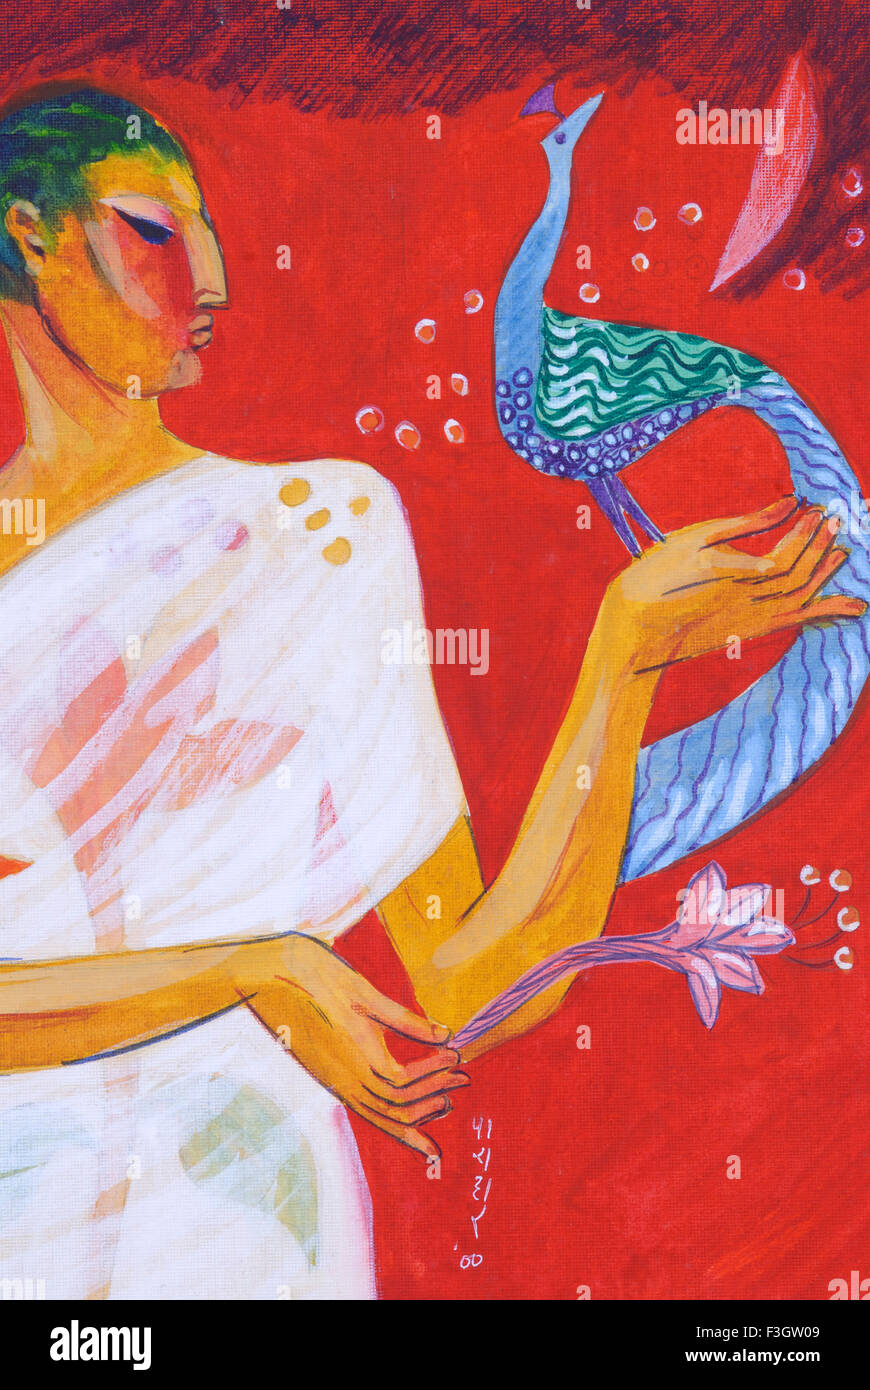 Ascetic Offering Lotus Flower To Bird Painted Flower On His White